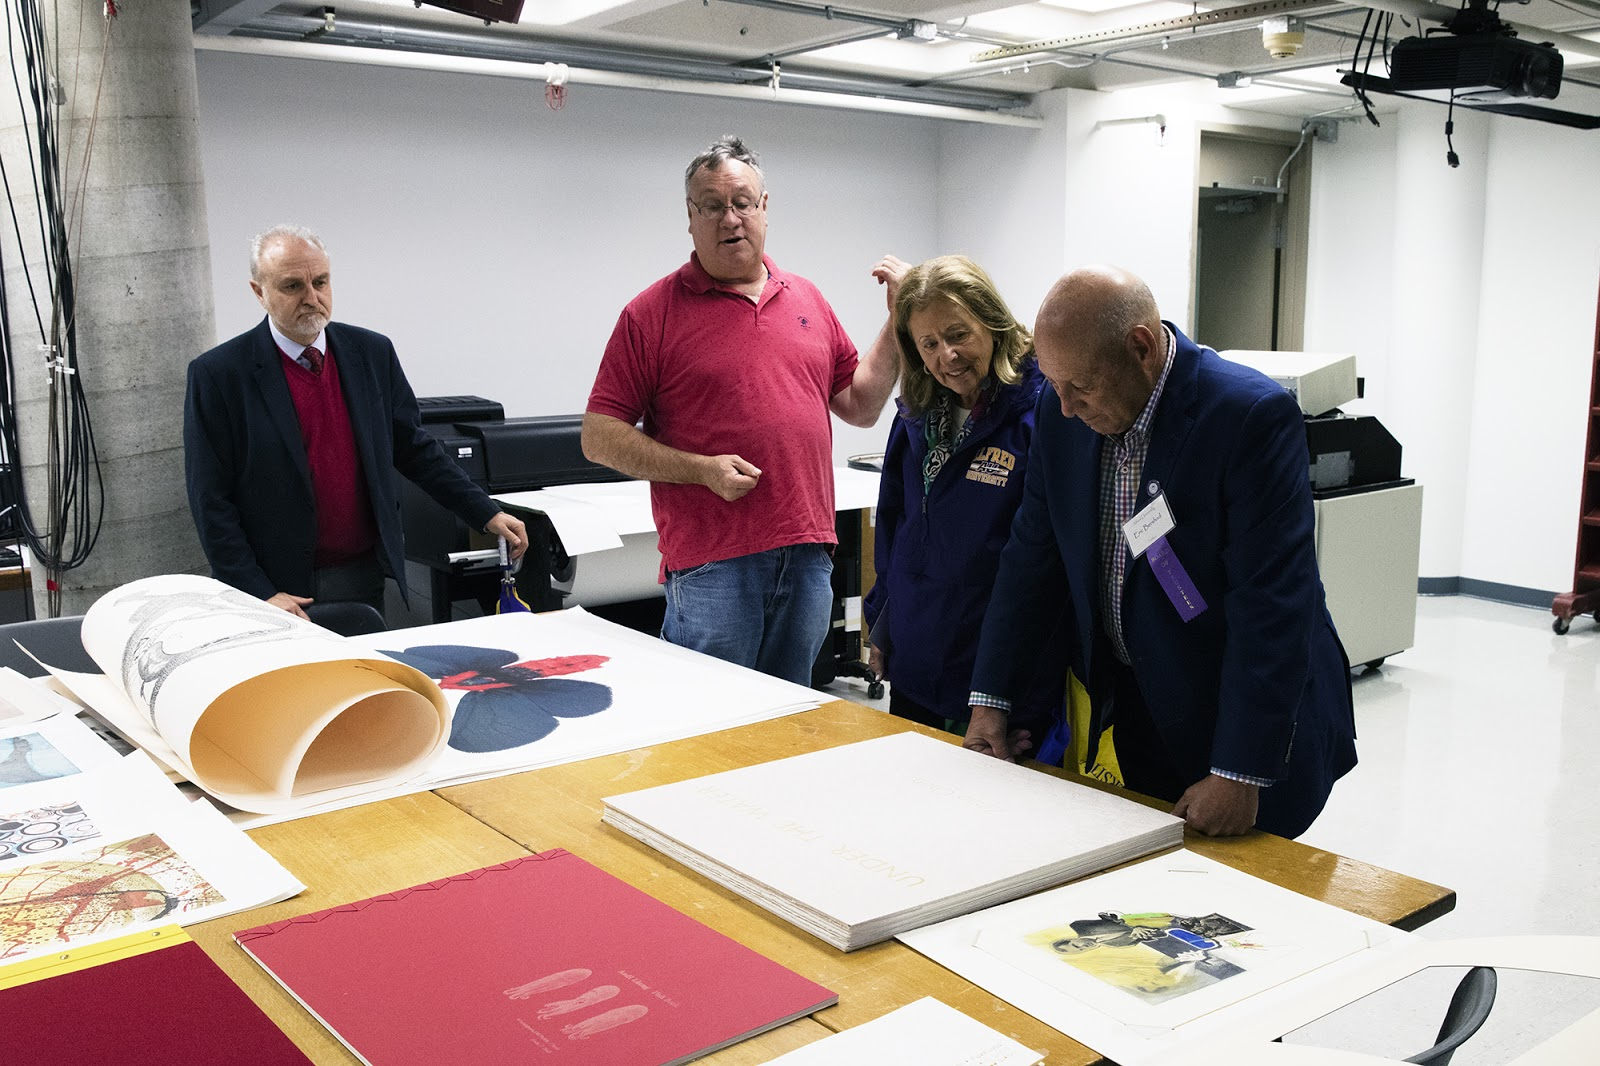 (left to right) School of Art & Design Dean Gerar Edizel, IEA Co-Director Joseph Scheer, and Alfred University Trustees Susan and Eric Bershad looking at an artist book made by Zihao Chen (BFA 2013), a former student of Joseph Scheer.